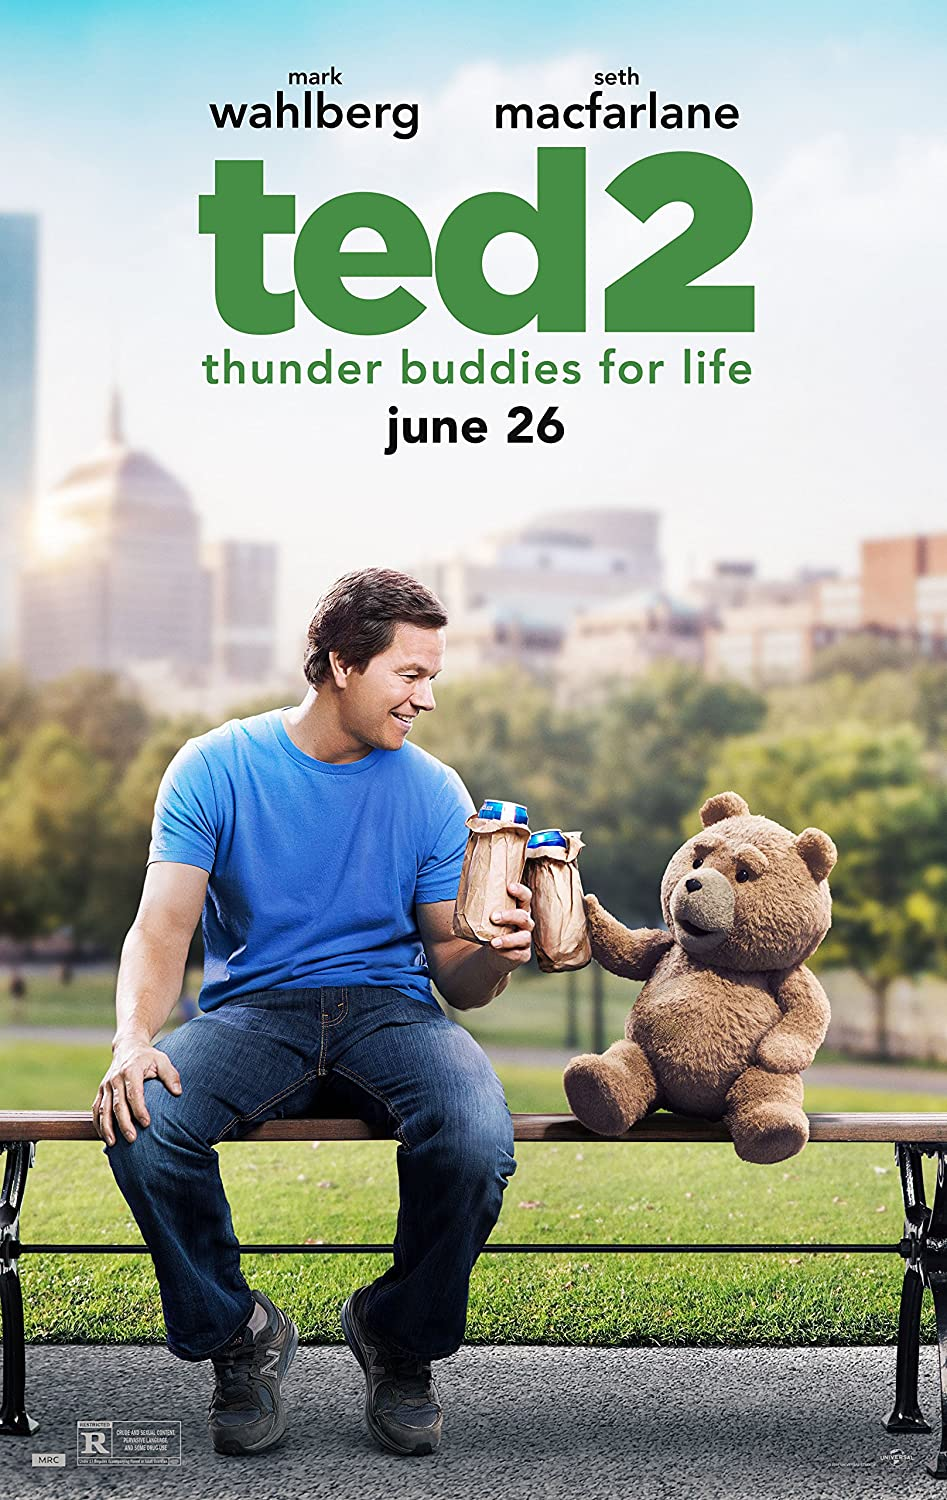 Ted 2 - Movie Poster 24 x 36, Glossy Finish (Thick): Mark Wahlberg, Amanda Seyfried